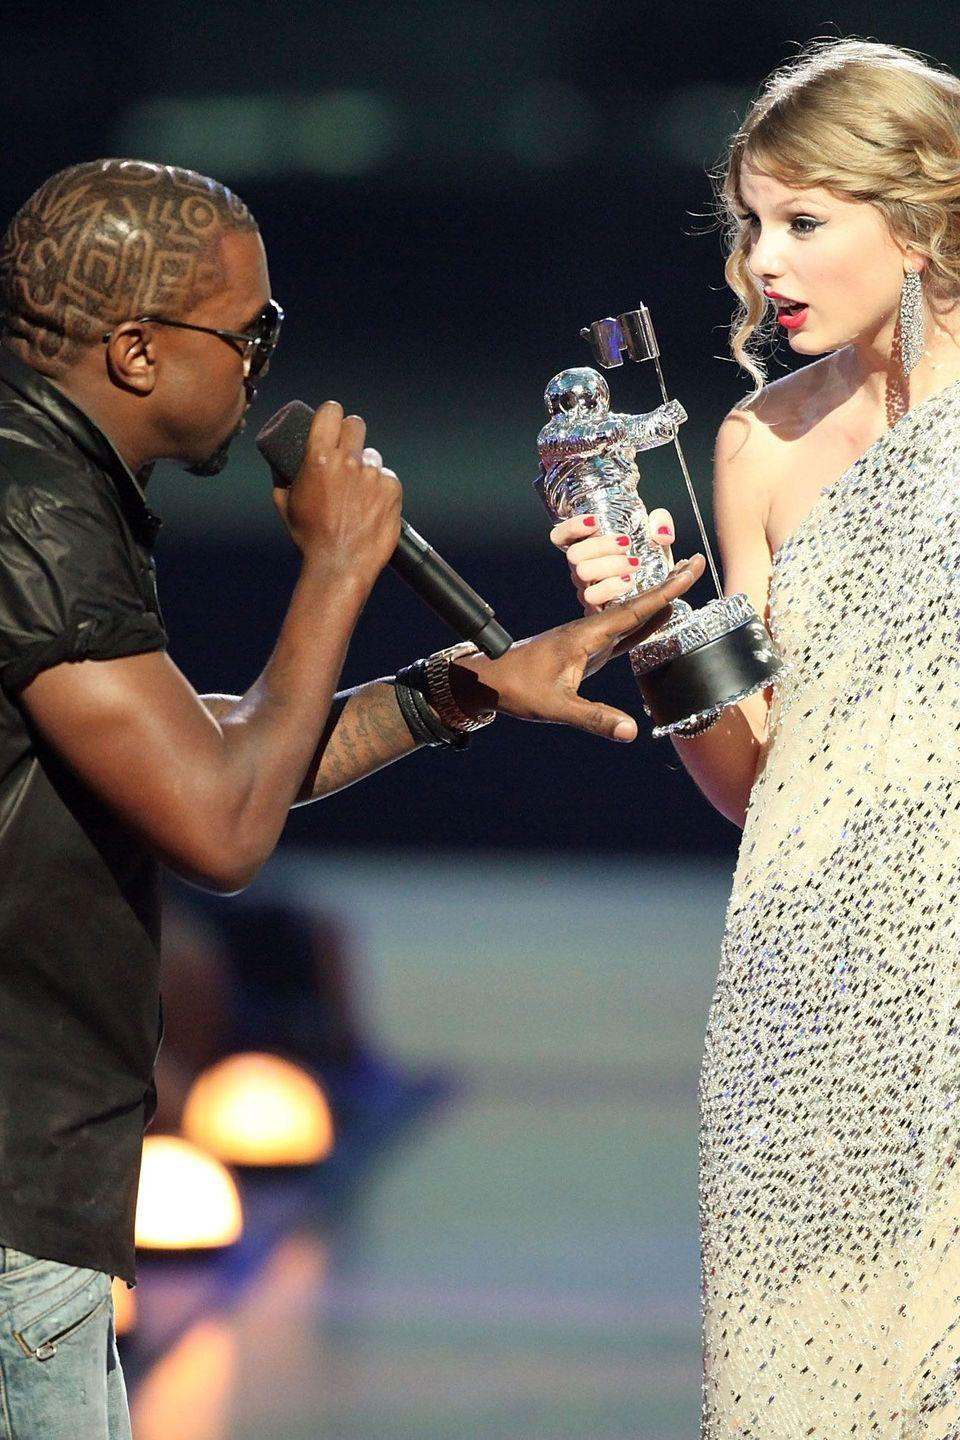 <p>I'mma let you finish, but West and Swift have one of the greatest feuds of all time. When West stormed the stage to interrupt Swift's acceptance speech for Best Female Video at the MTV Video Music Awards, he set off a chain of events that still affect that artists' careers today, fueling her homegrown underdog image and his of an unhinged wild card. Spoiler alert: Check out the 2016 slide.</p>